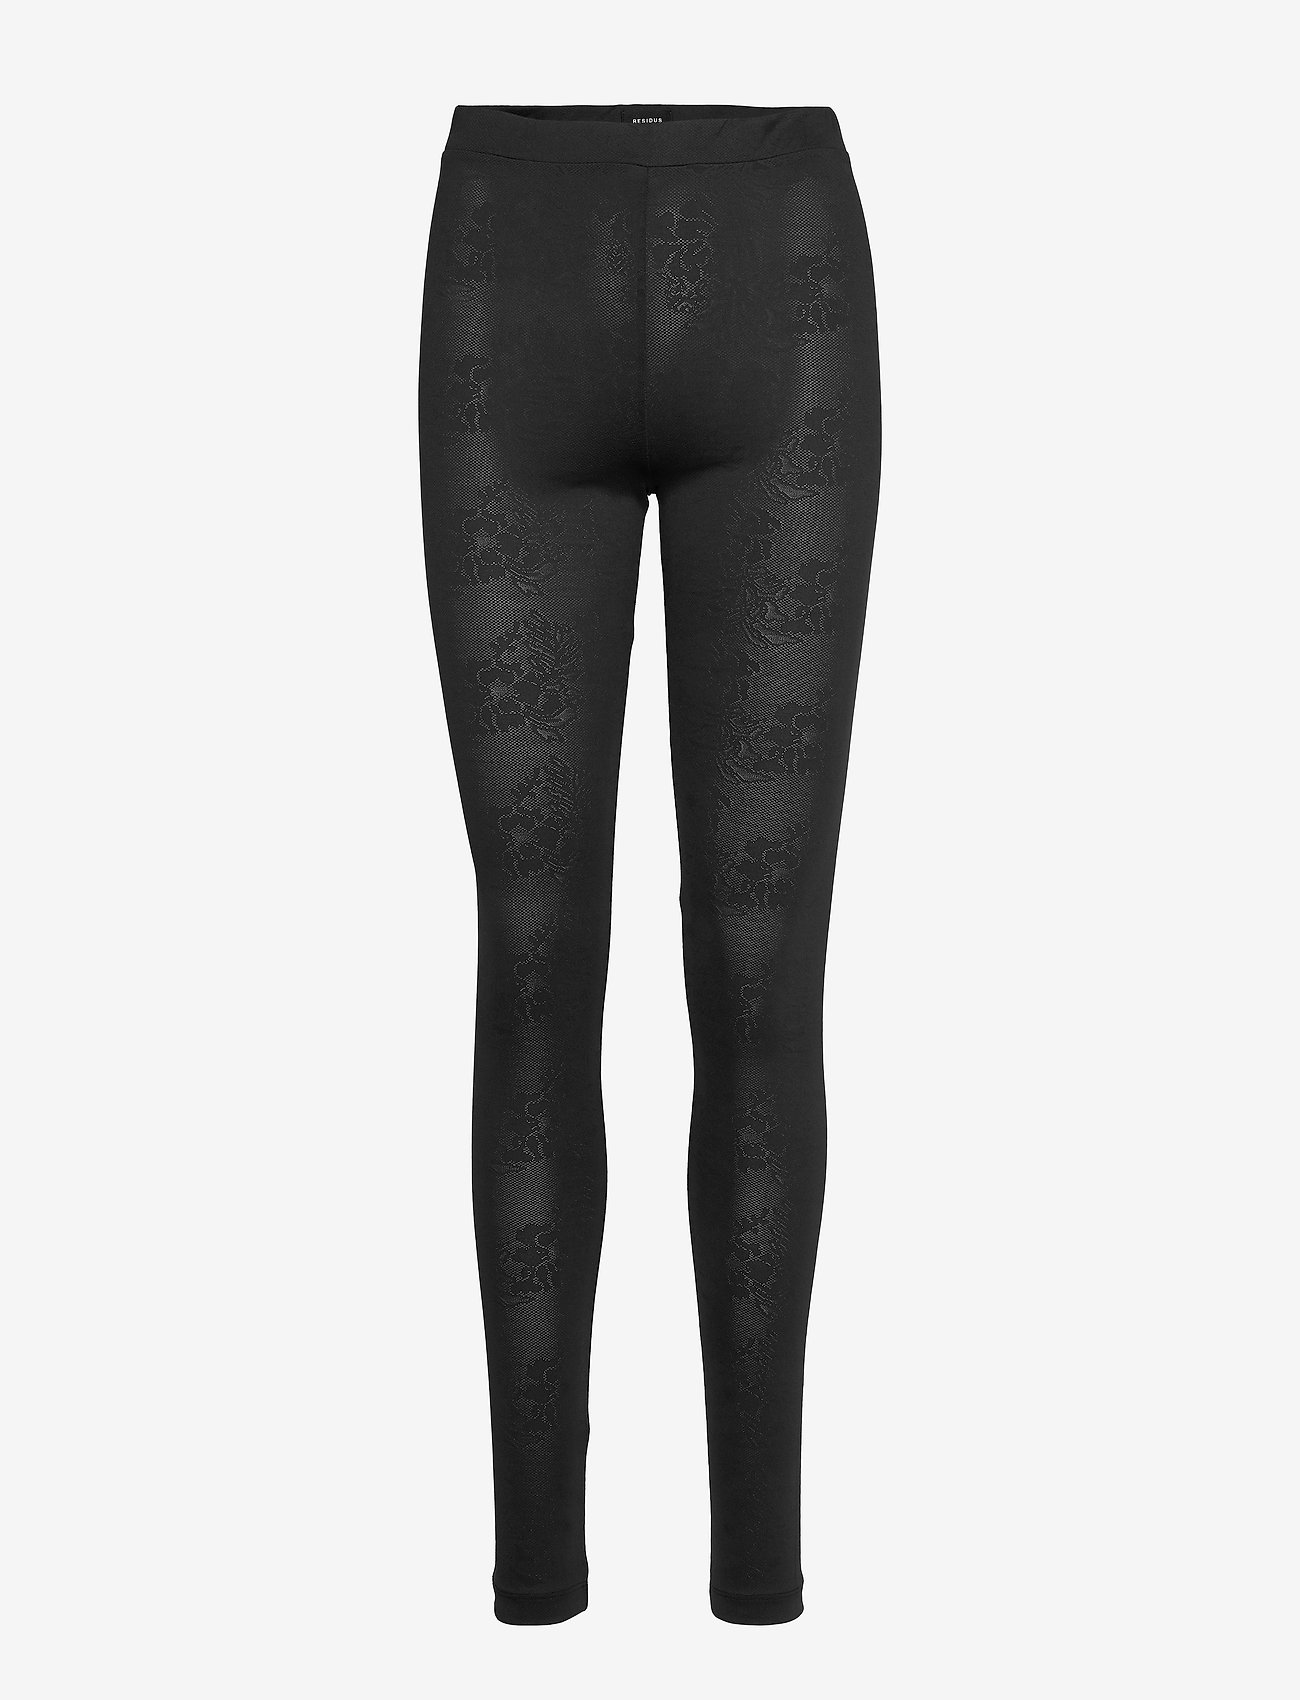 Residus - BEY JACQUARD TIGHTS - leggings - black - 0